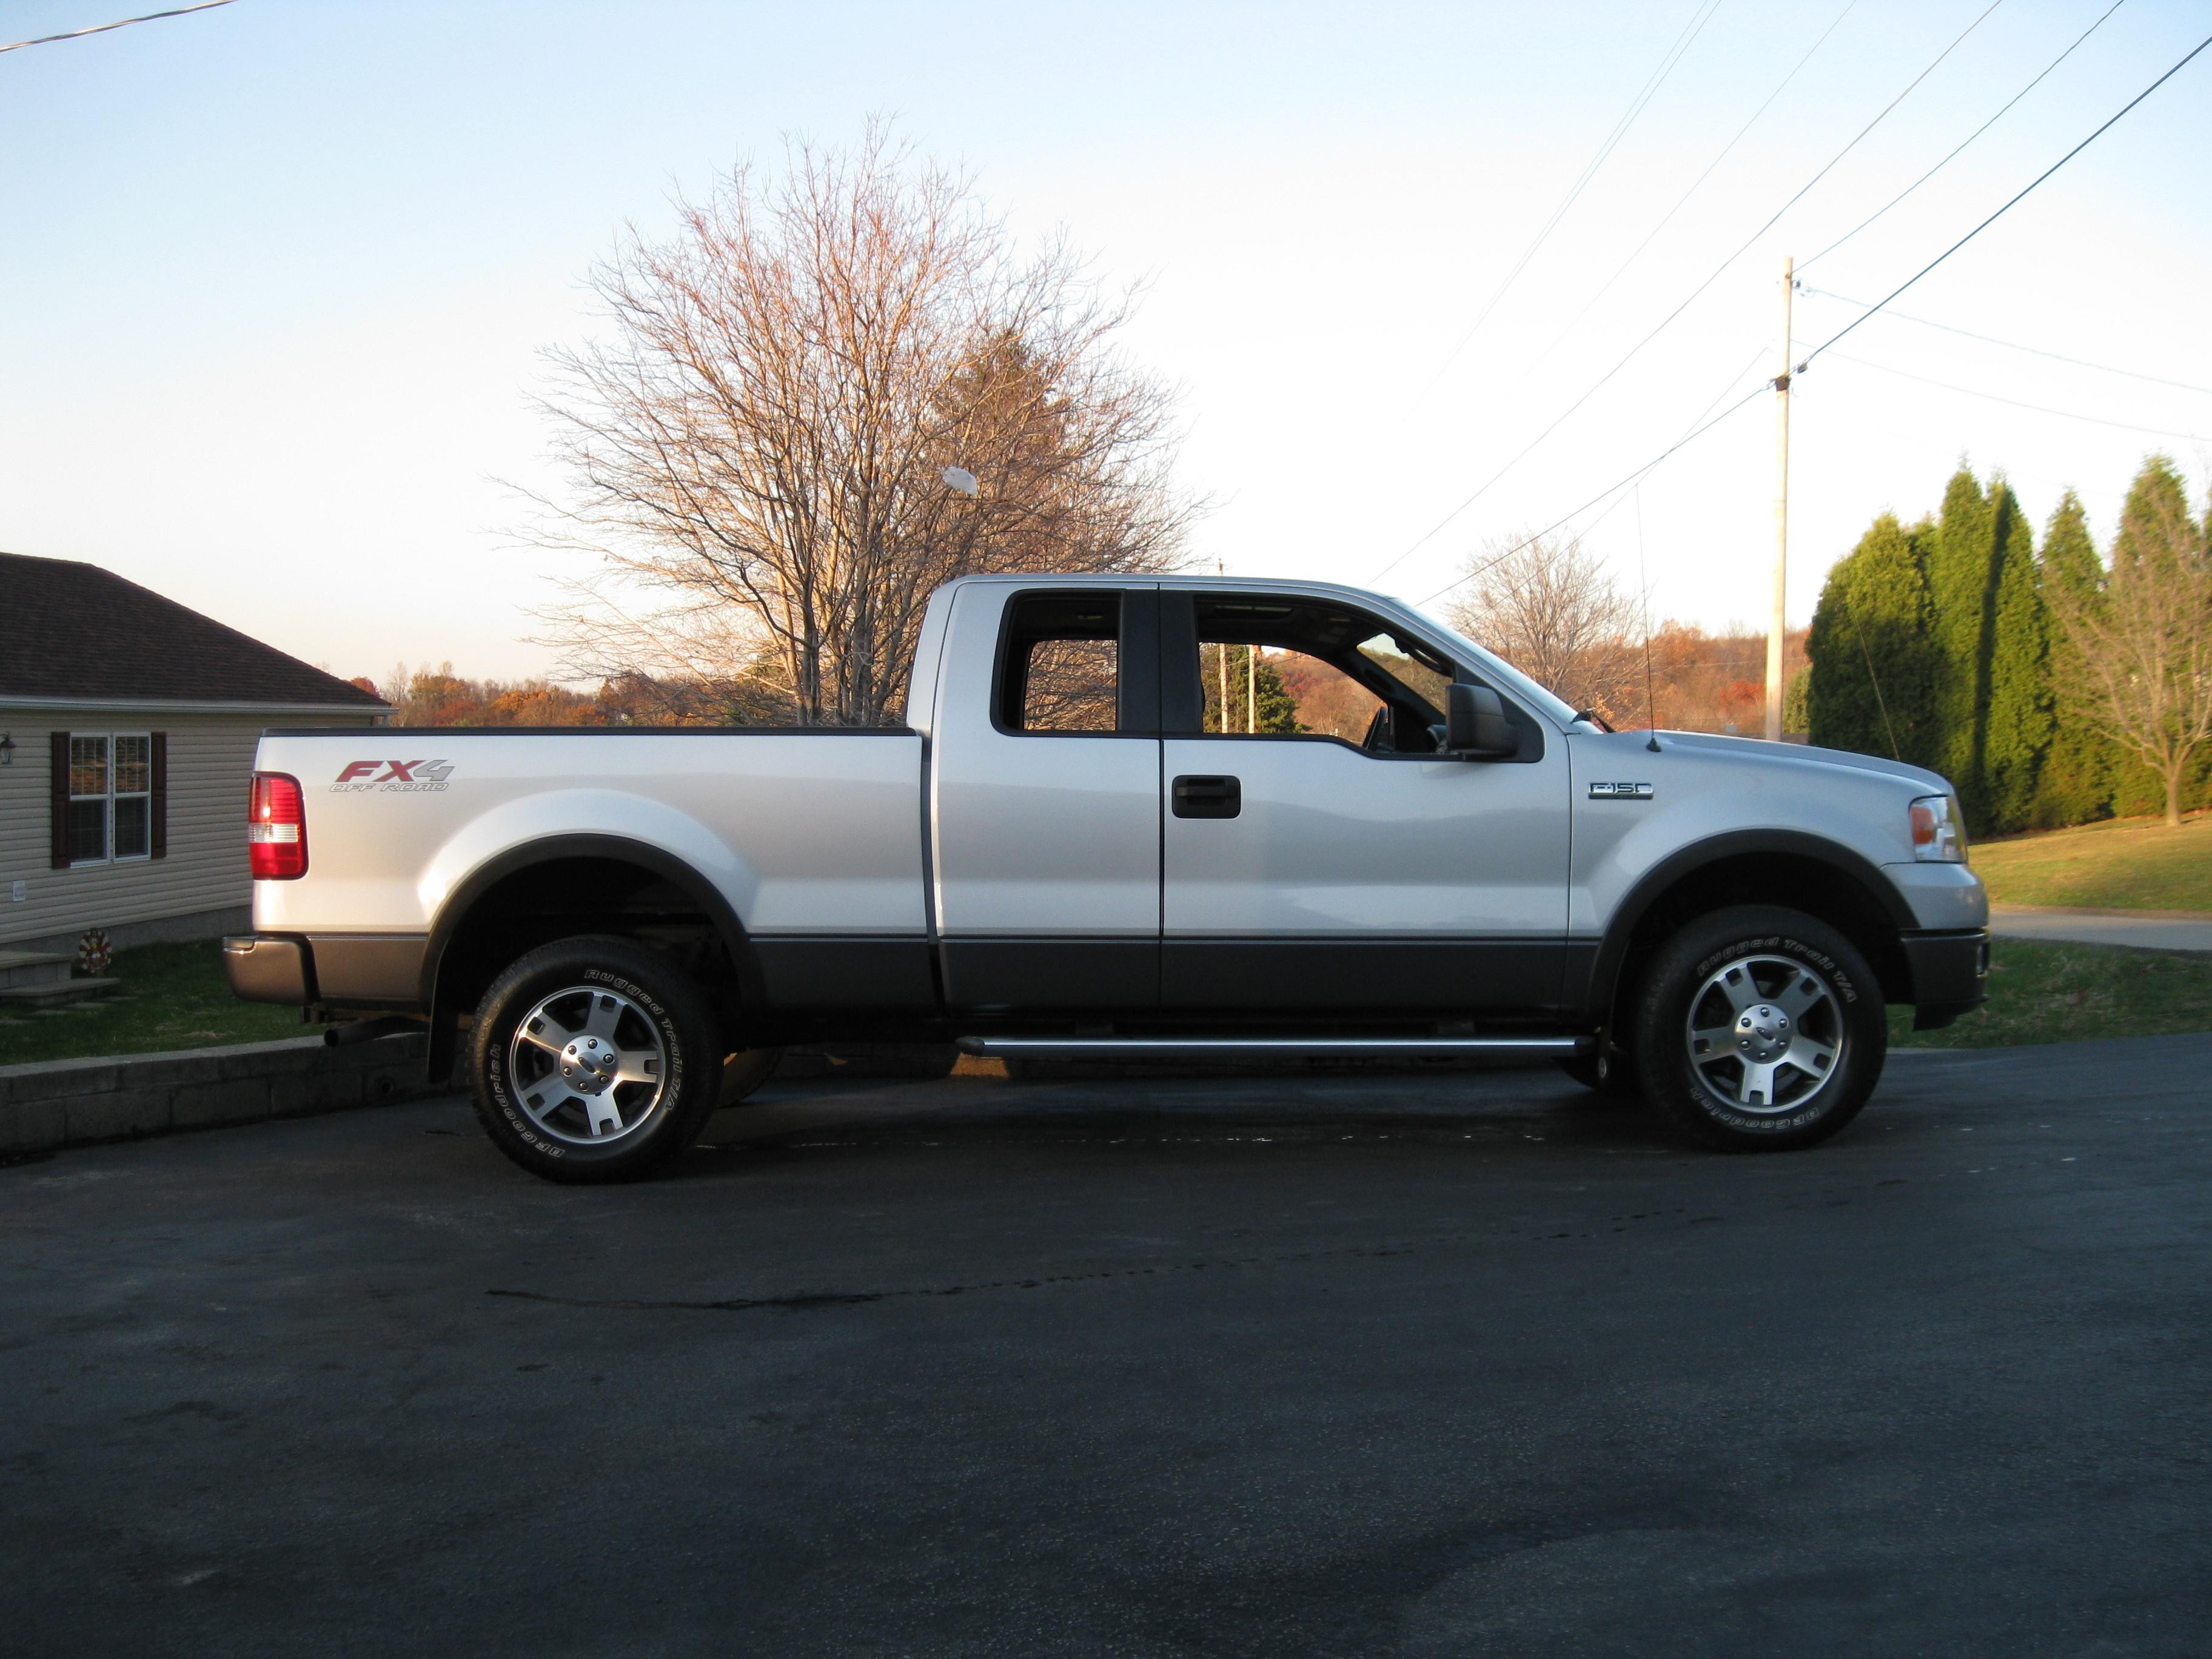 Ford Dude 2005 Ford F150 Super Cabfx4 Styleside Pickup 4d